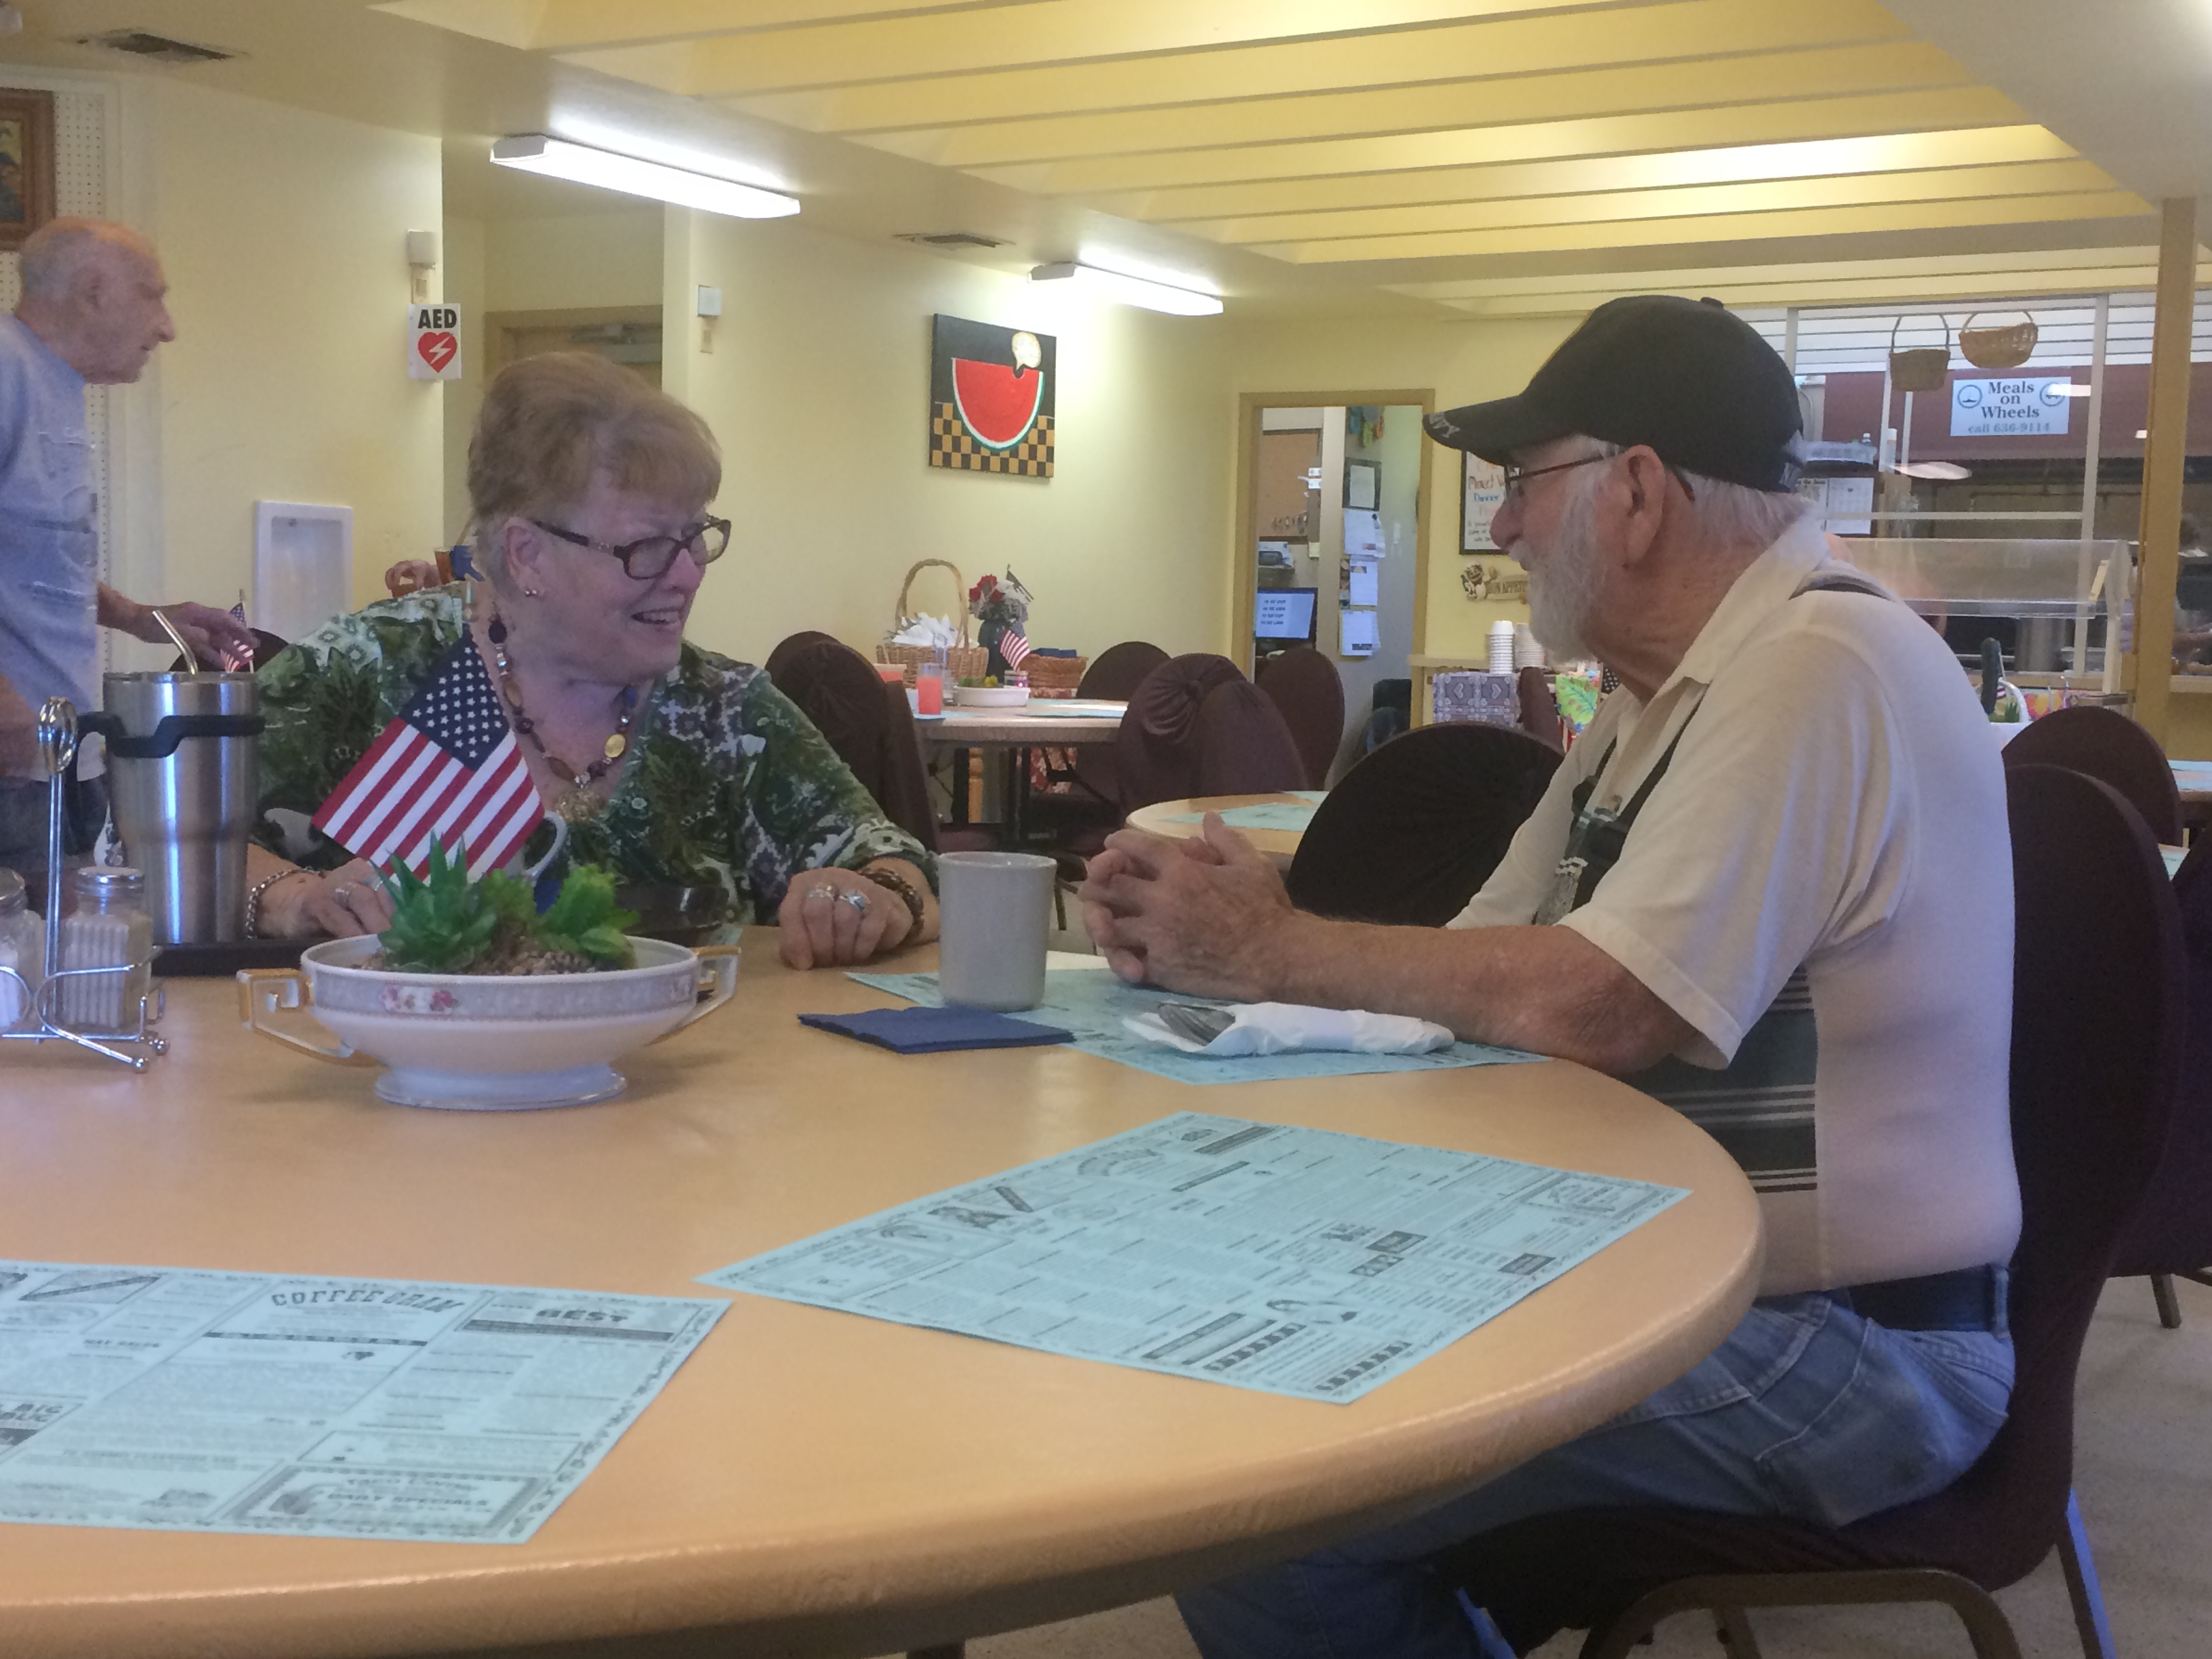 National study finds elderly more trusting than younger Americans, but local results differ